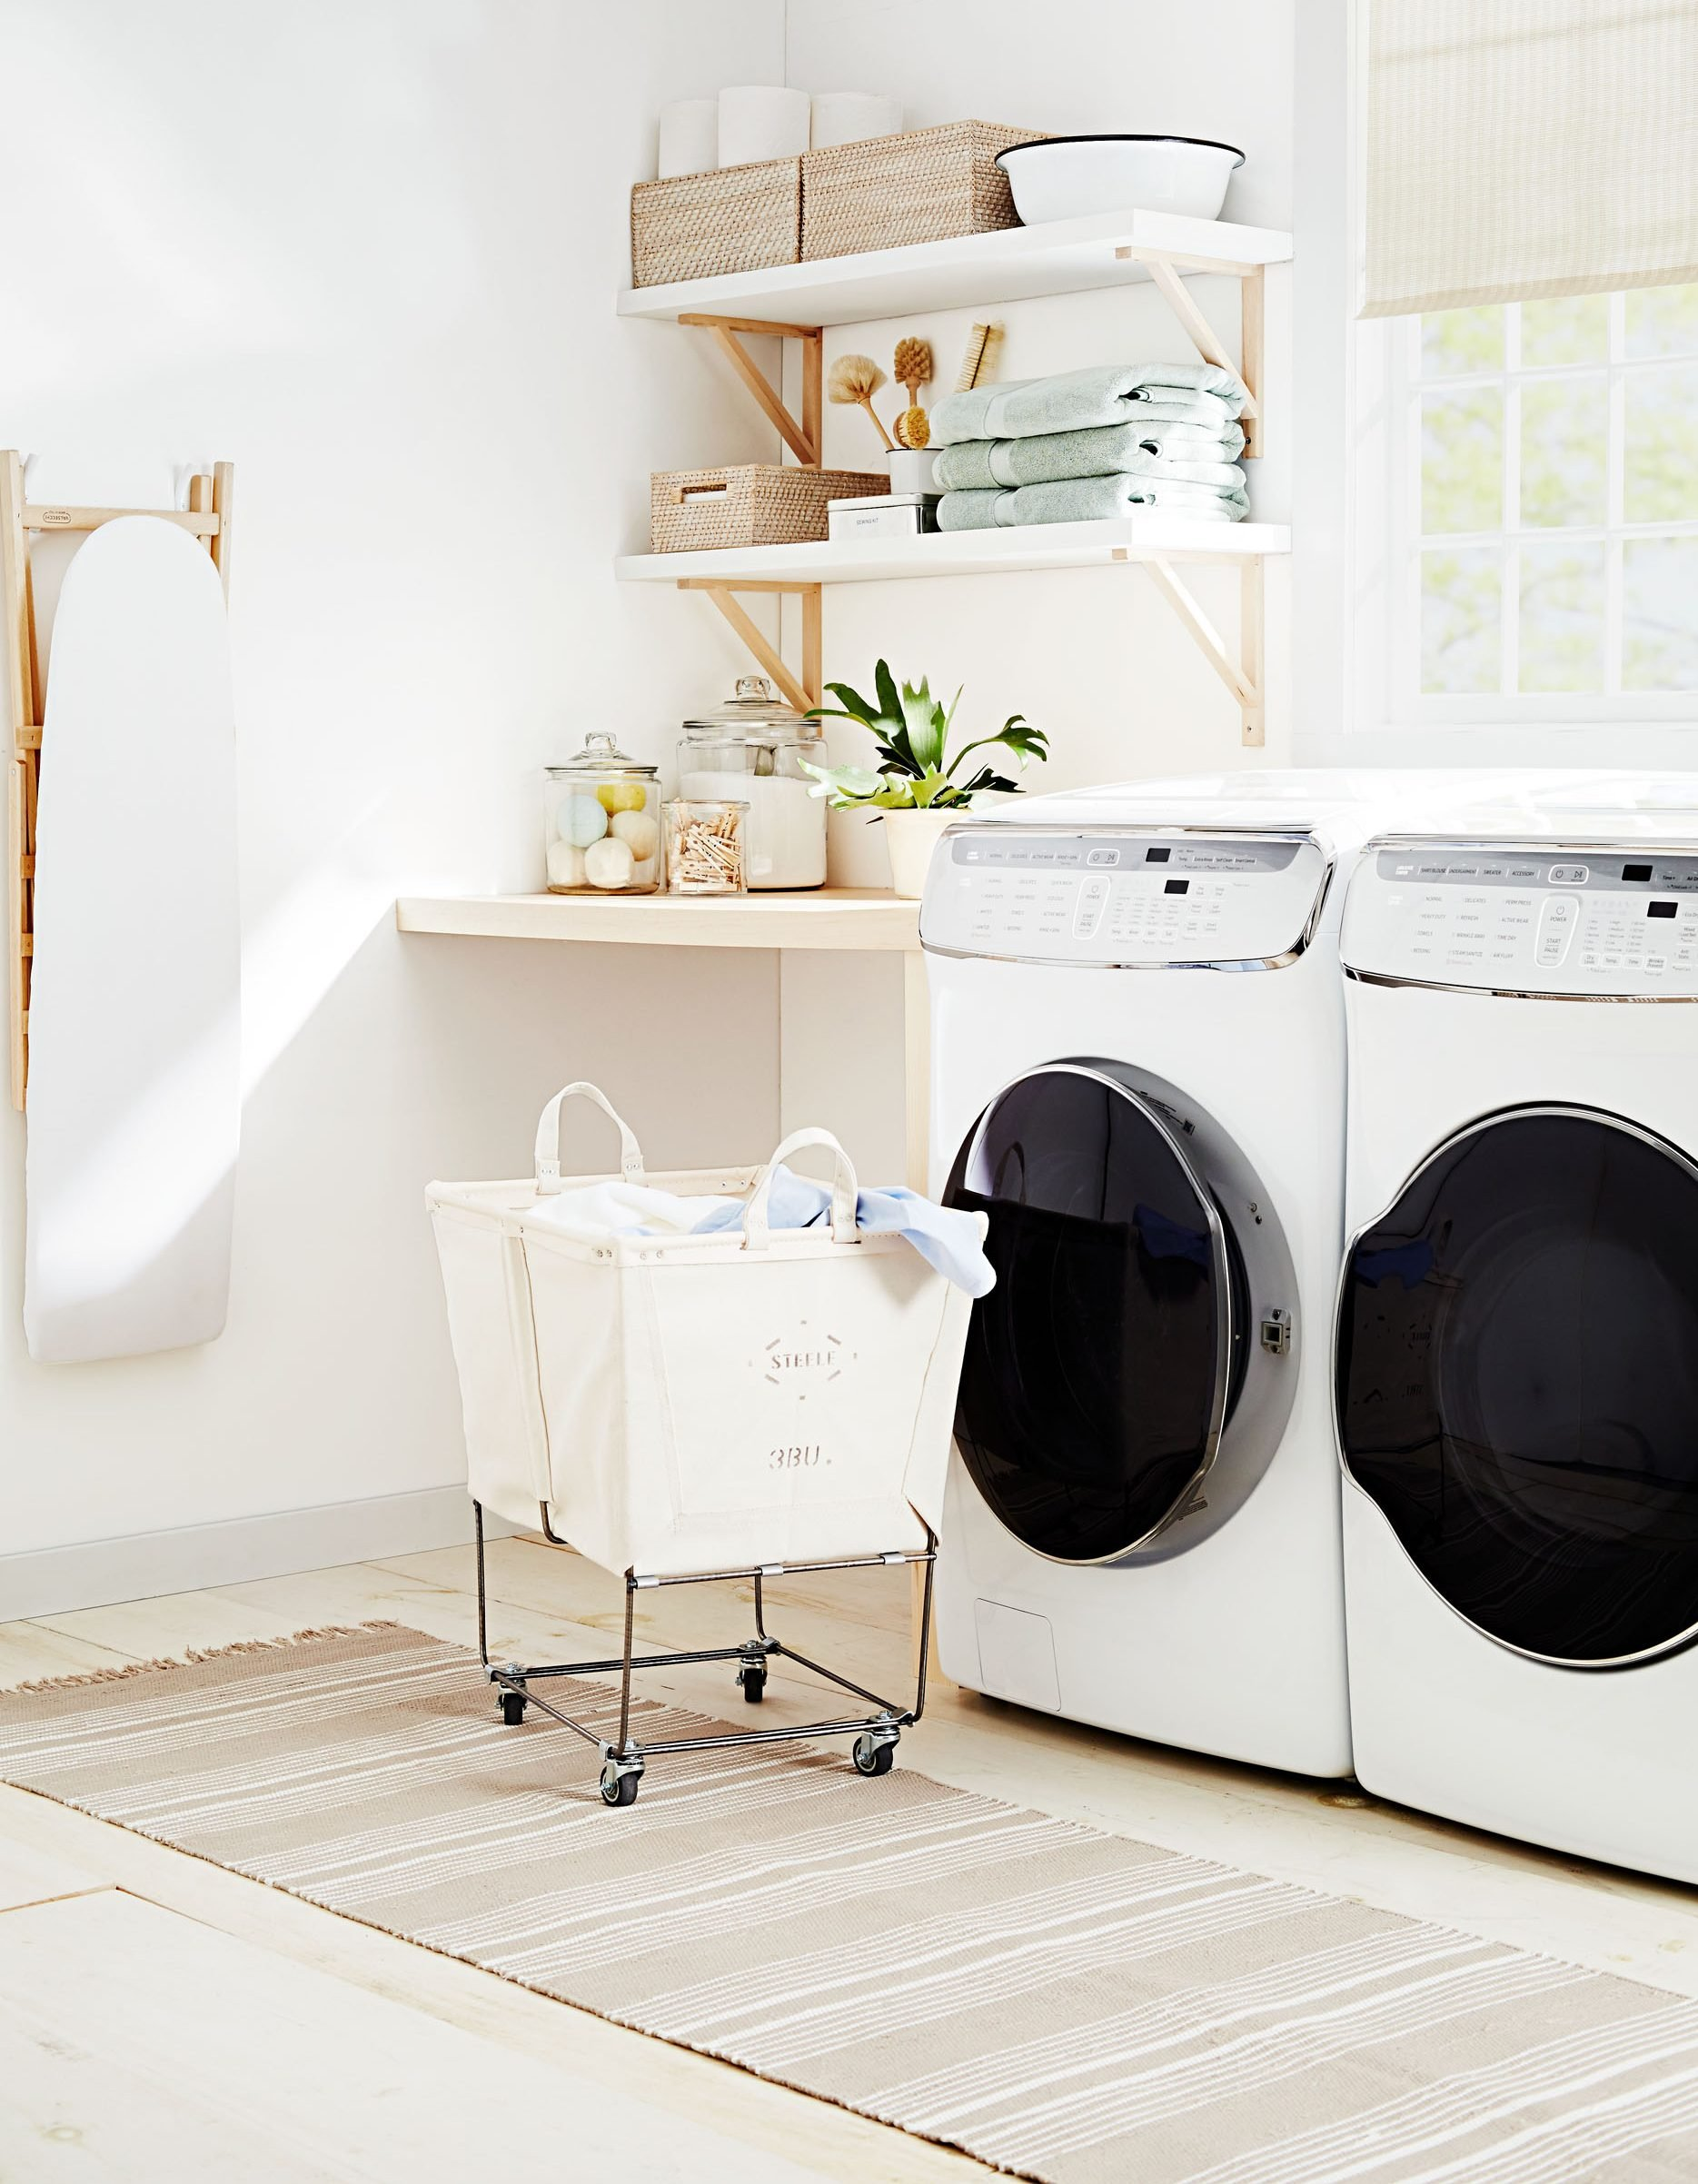 Laundry Room Refresh 5 Ways To Make Your Space Look And Work Better Bobby Berk